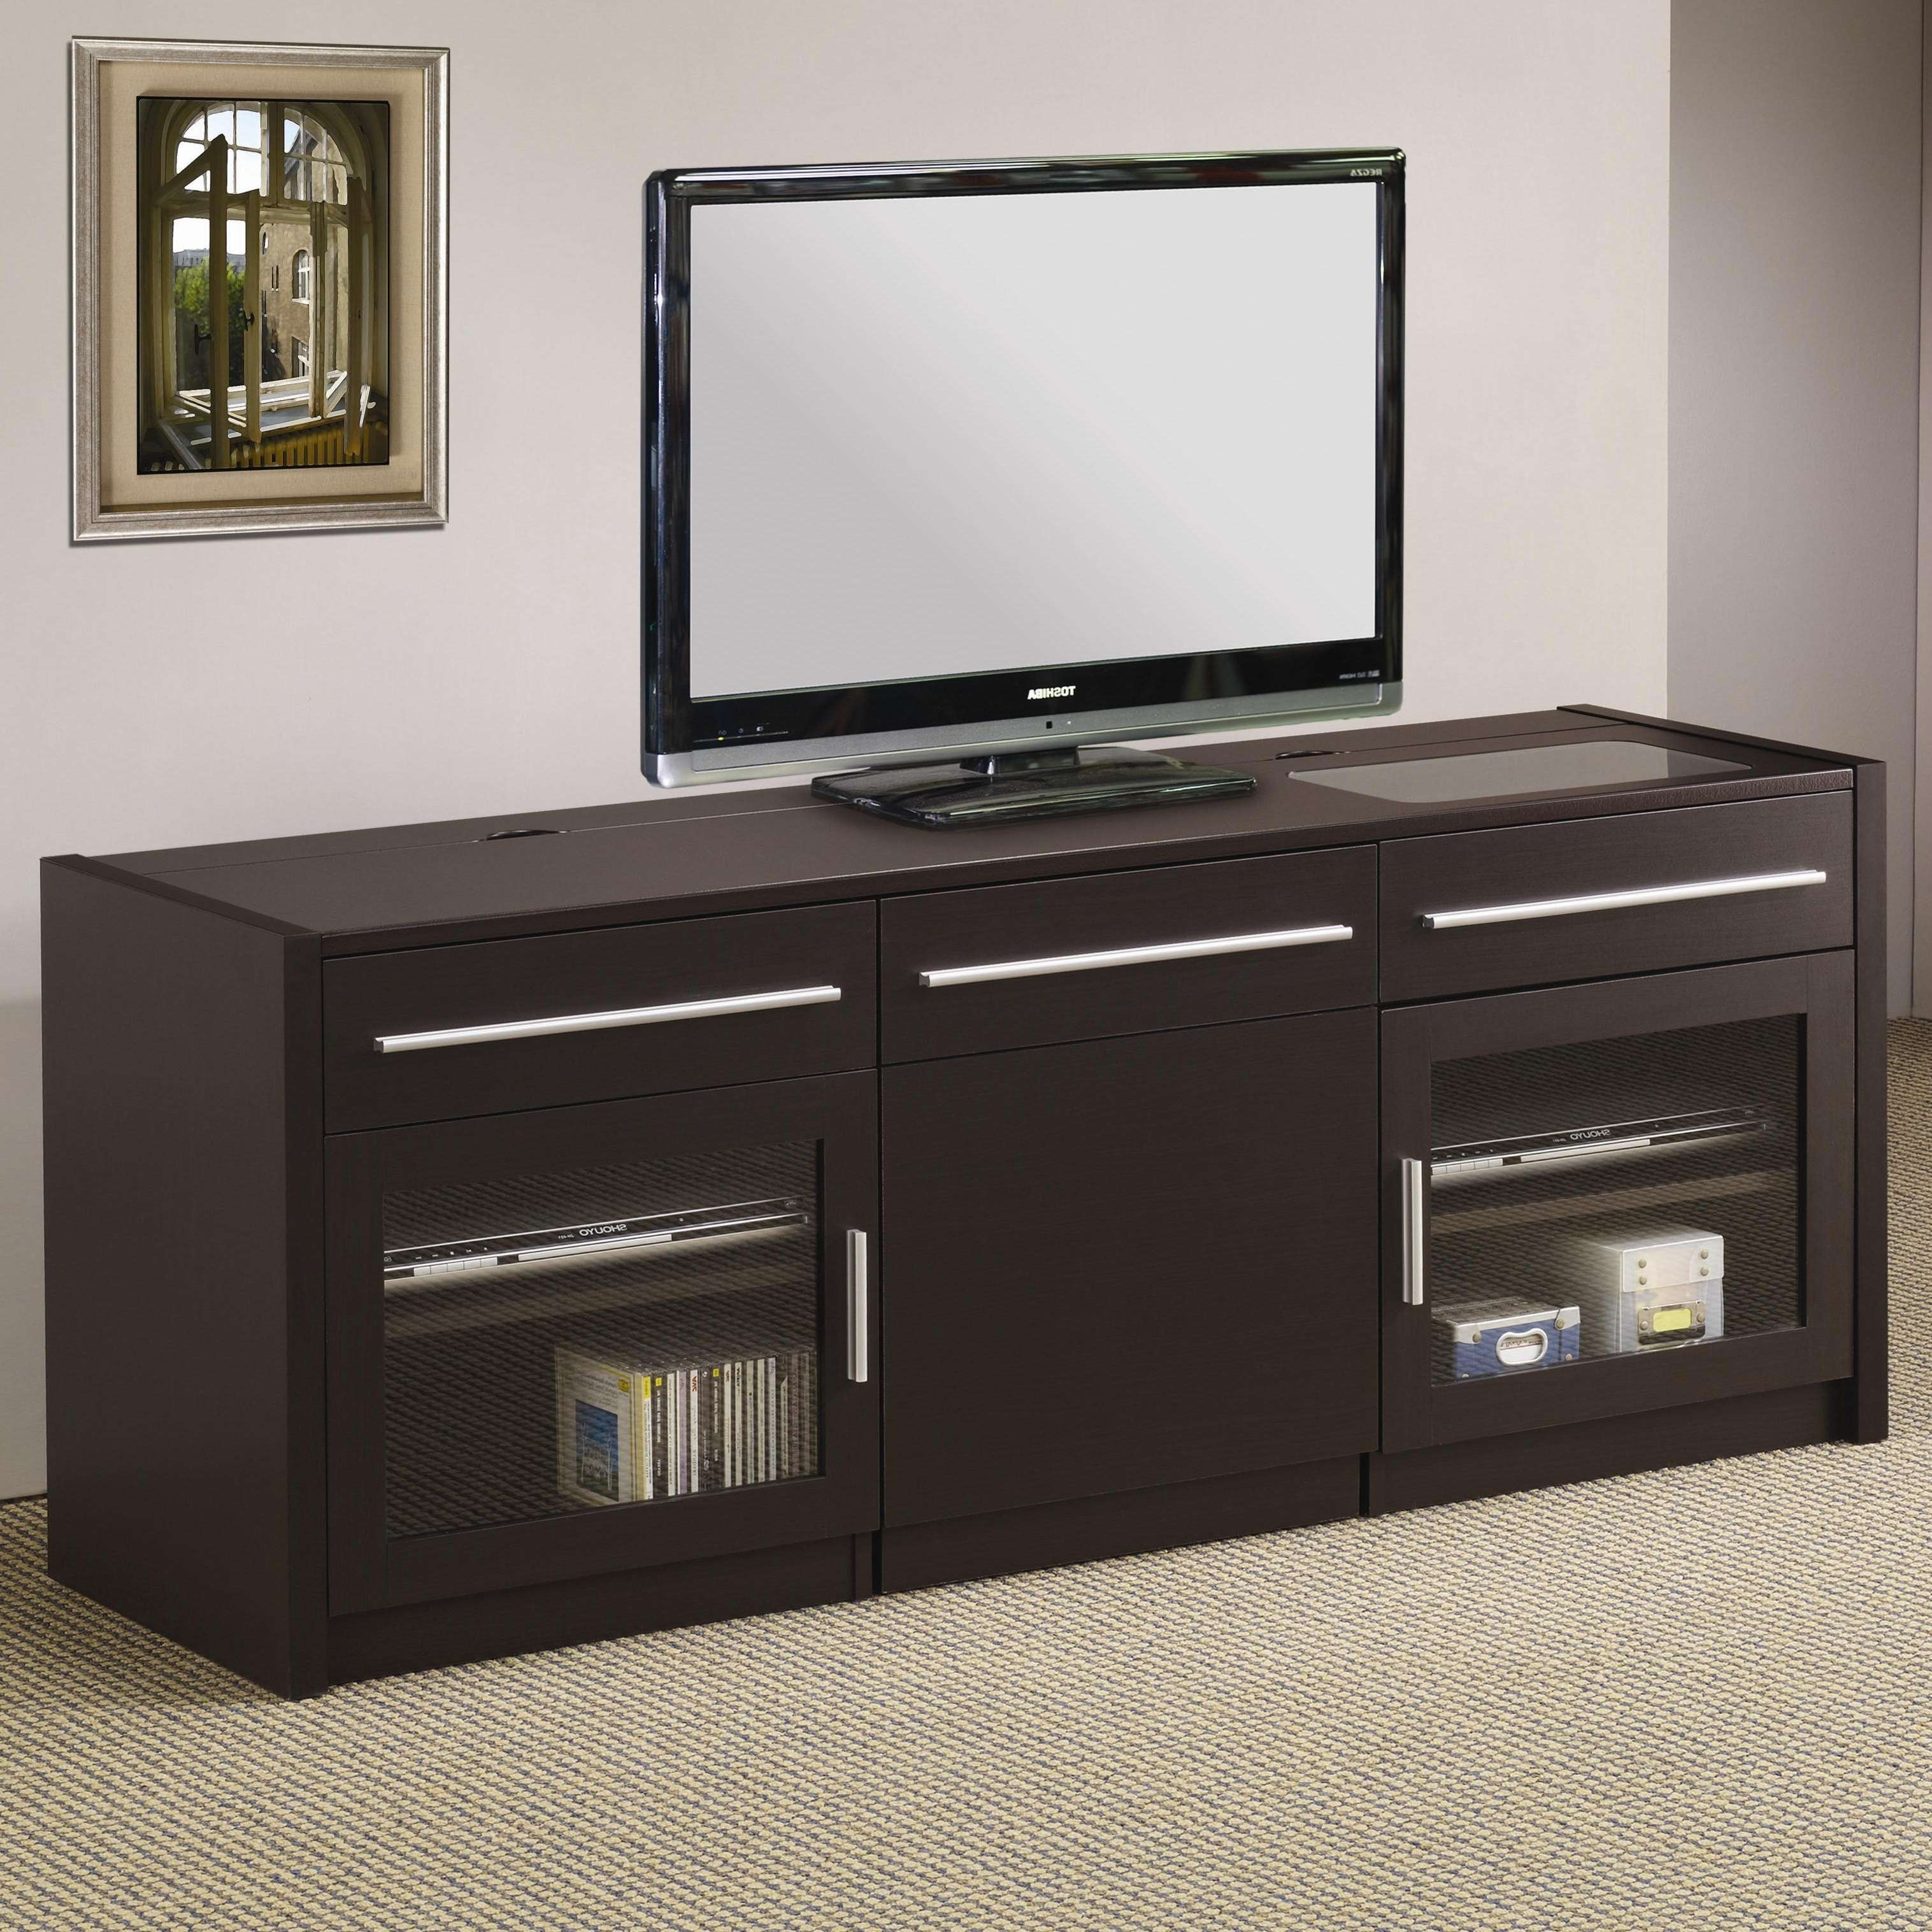 Flat Screen Entertainment Center Ideas Diy Corner Tv Stand Plans With Regard To Tv Stands And Computer Desk Combo (View 5 of 15)